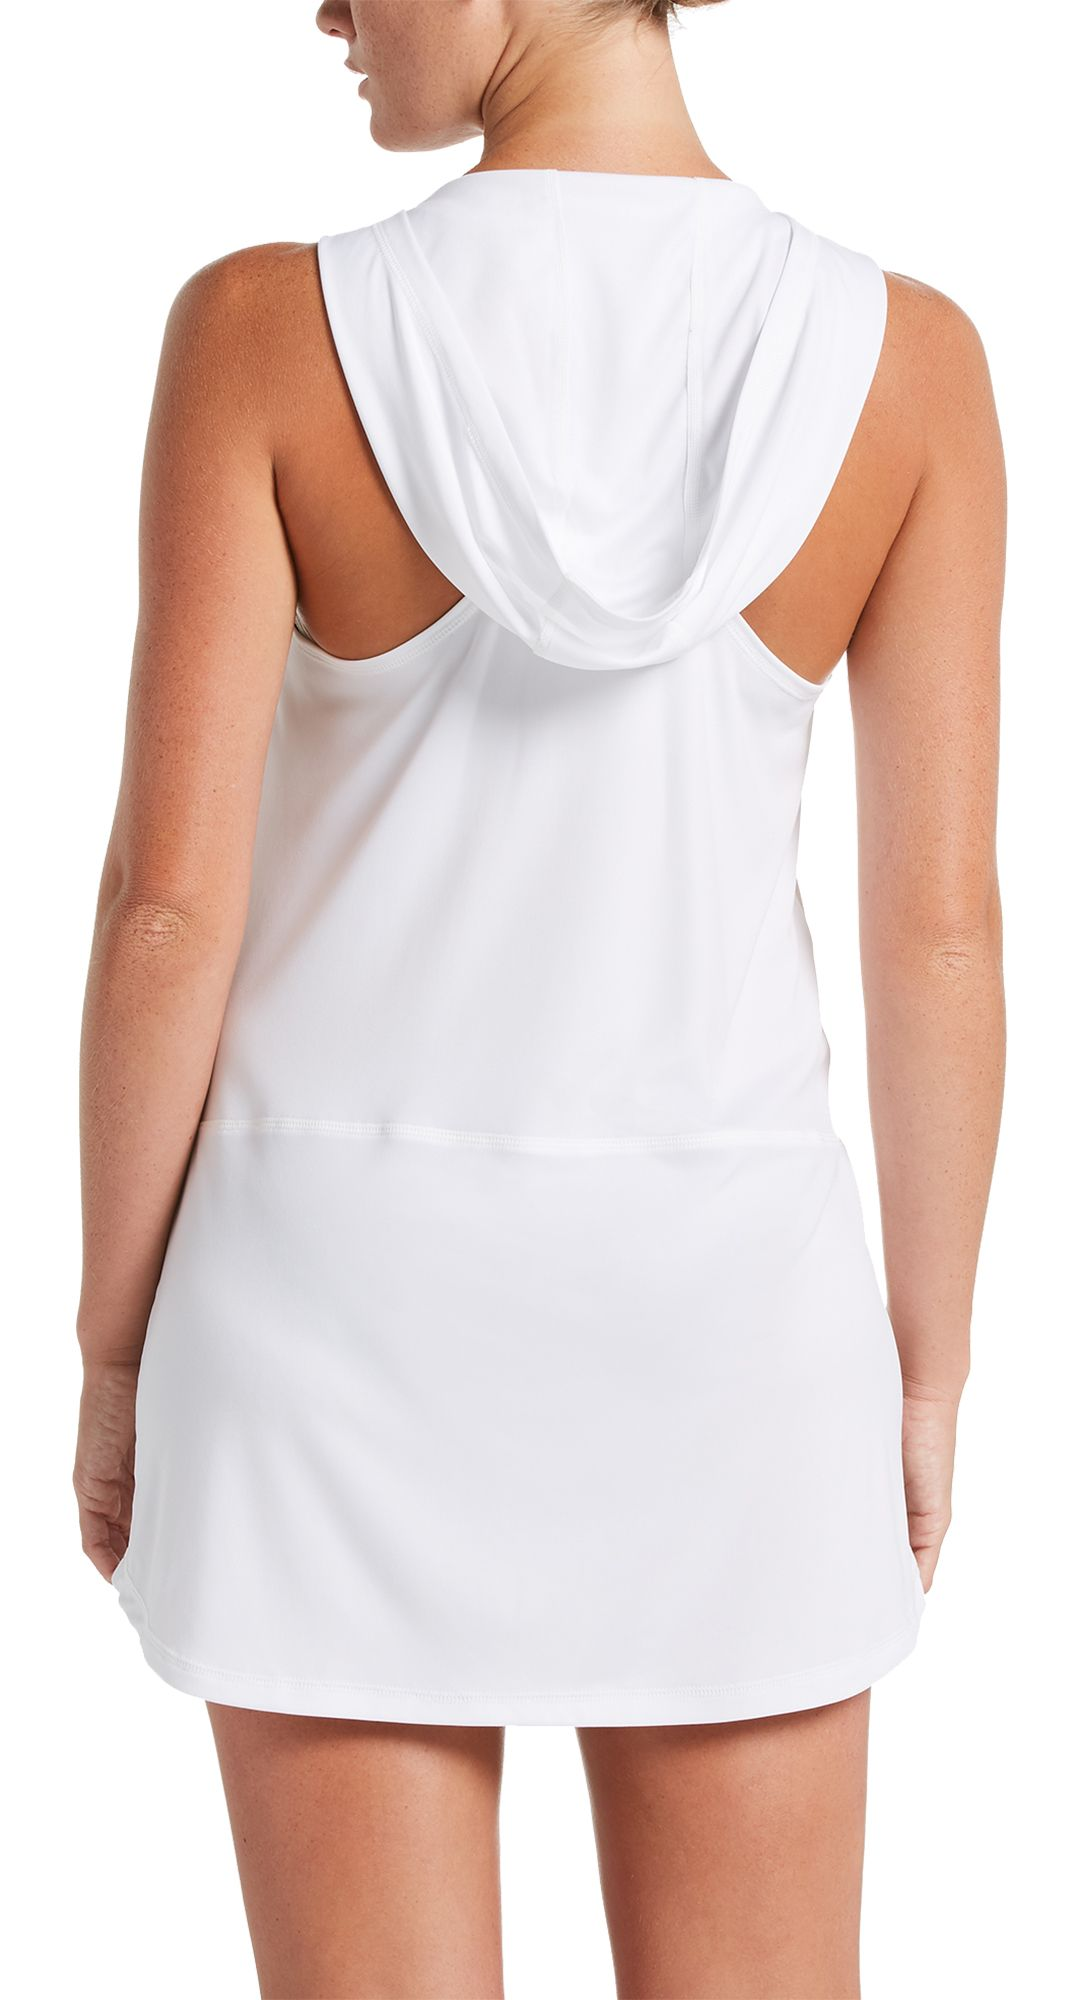 b0684816c7 Nike Women's Solid Hooded Racerback V-Neck Cover-Up Dress | DICK'S ...